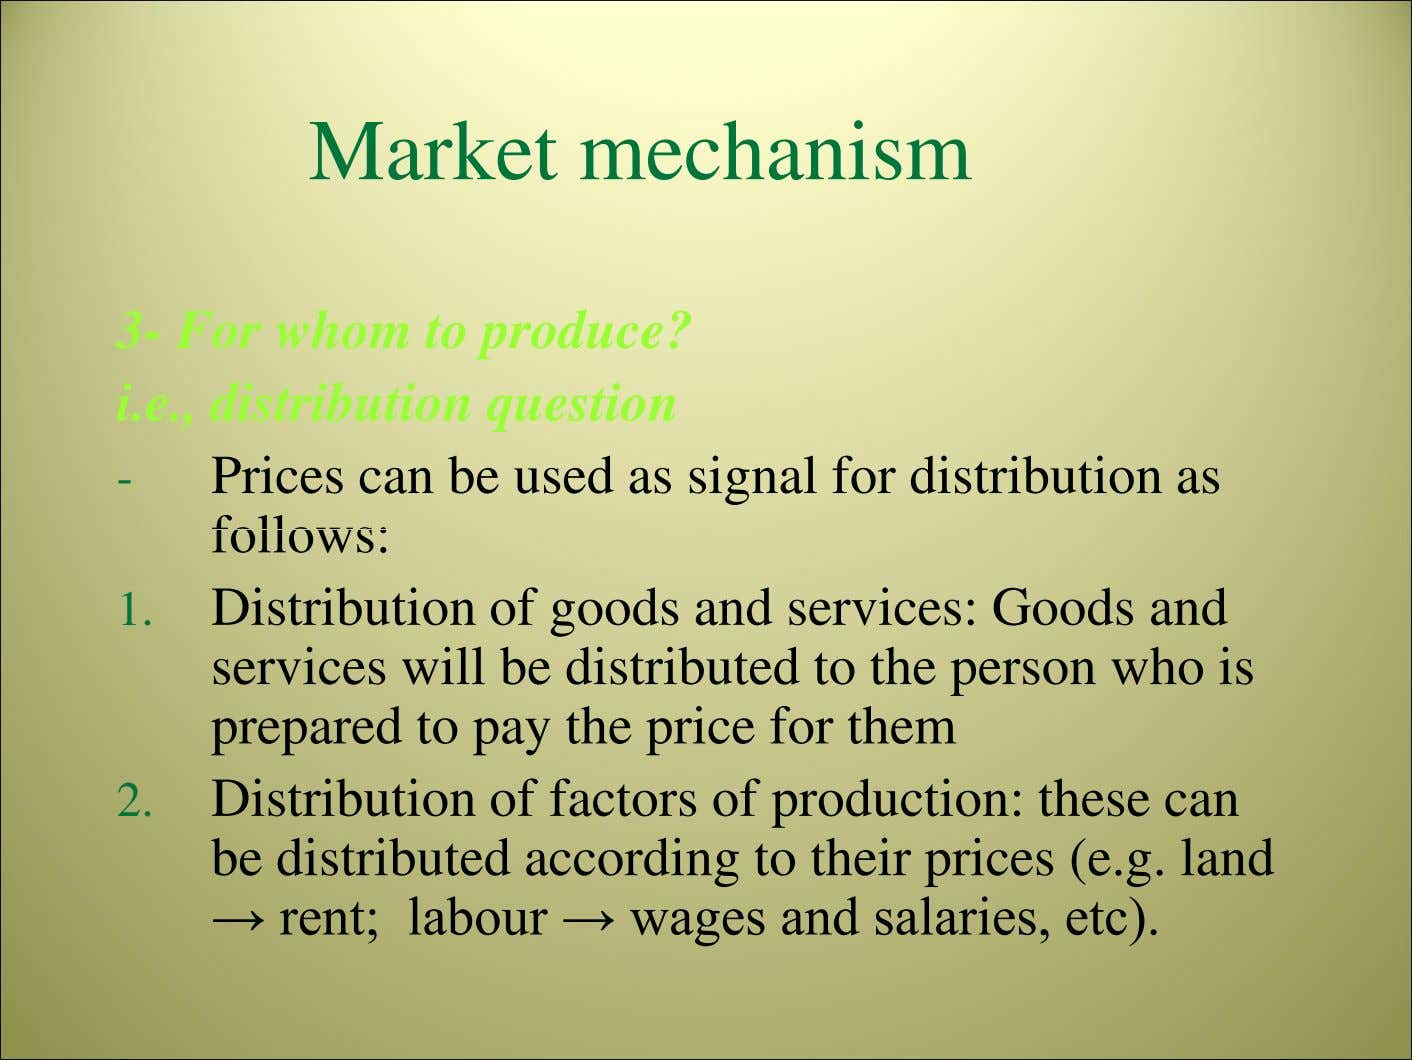 Market mechanism 3- For whom to produce? i.e., distribution question - Prices can be used